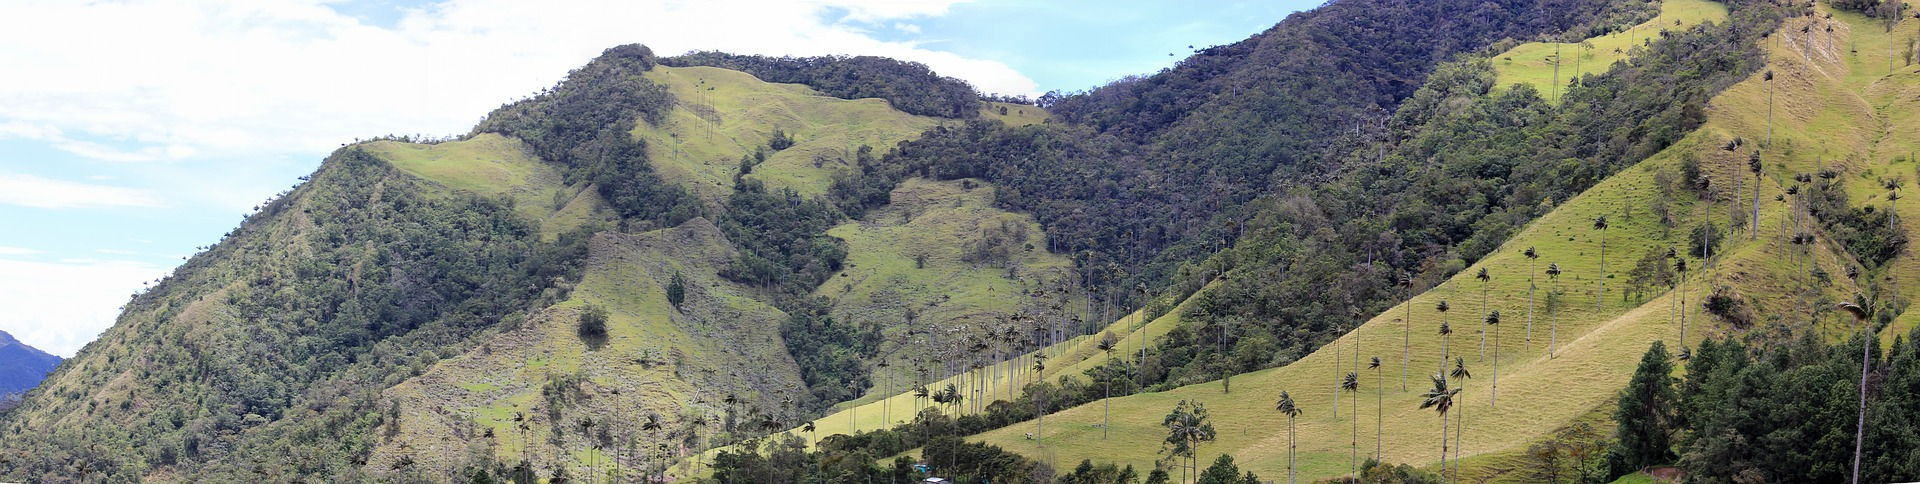 Valle de Cocora Voluntariado en Colombia